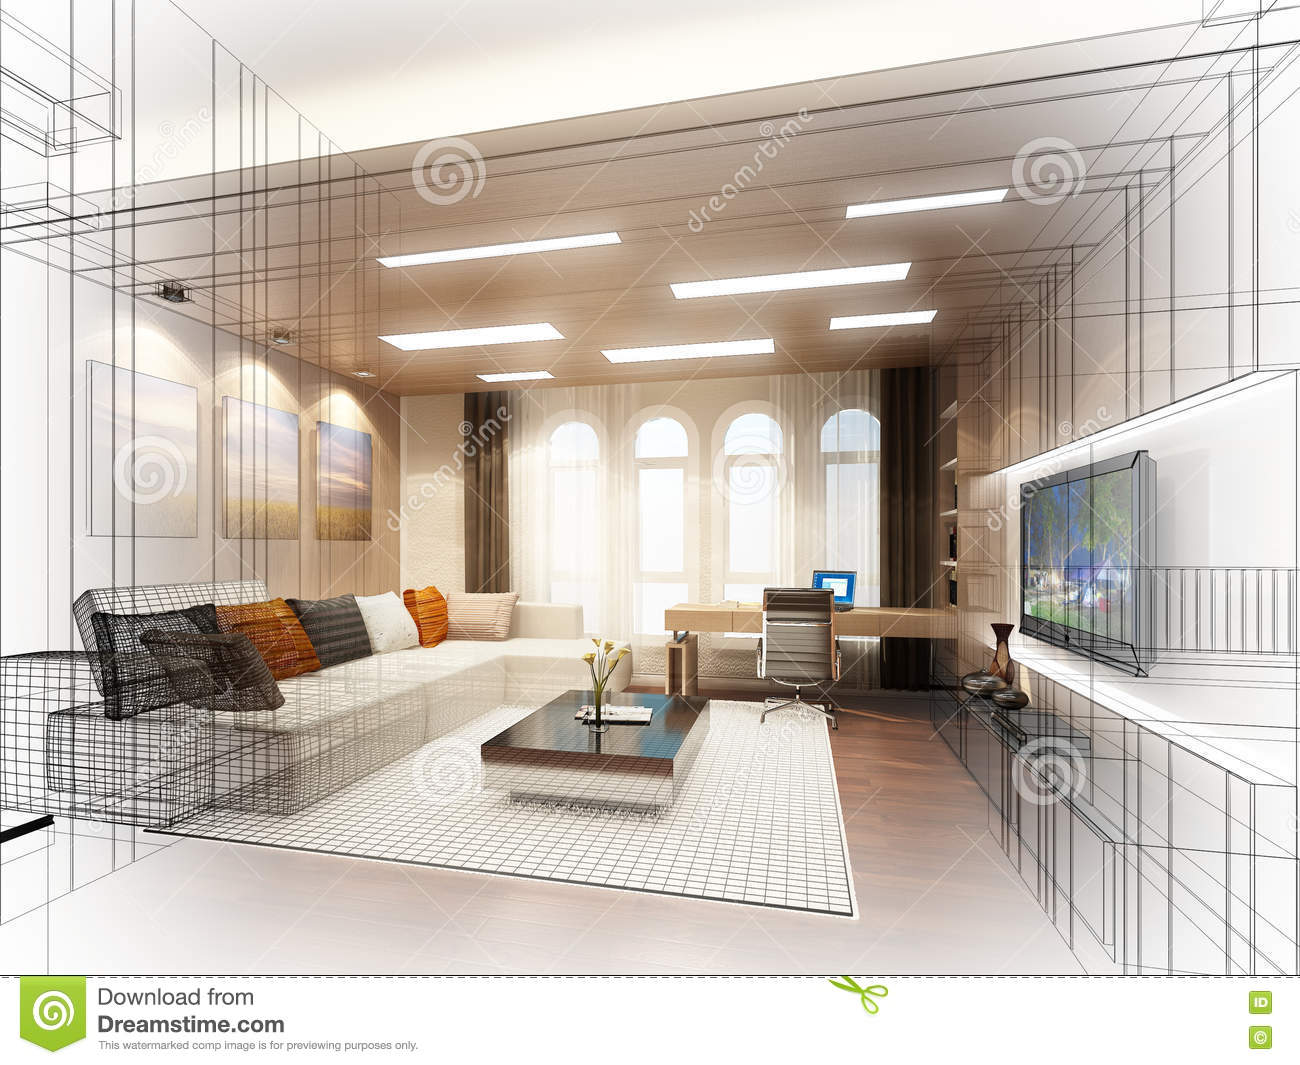 Sketch design of living room 3dwire frame stock Room sketches interior design